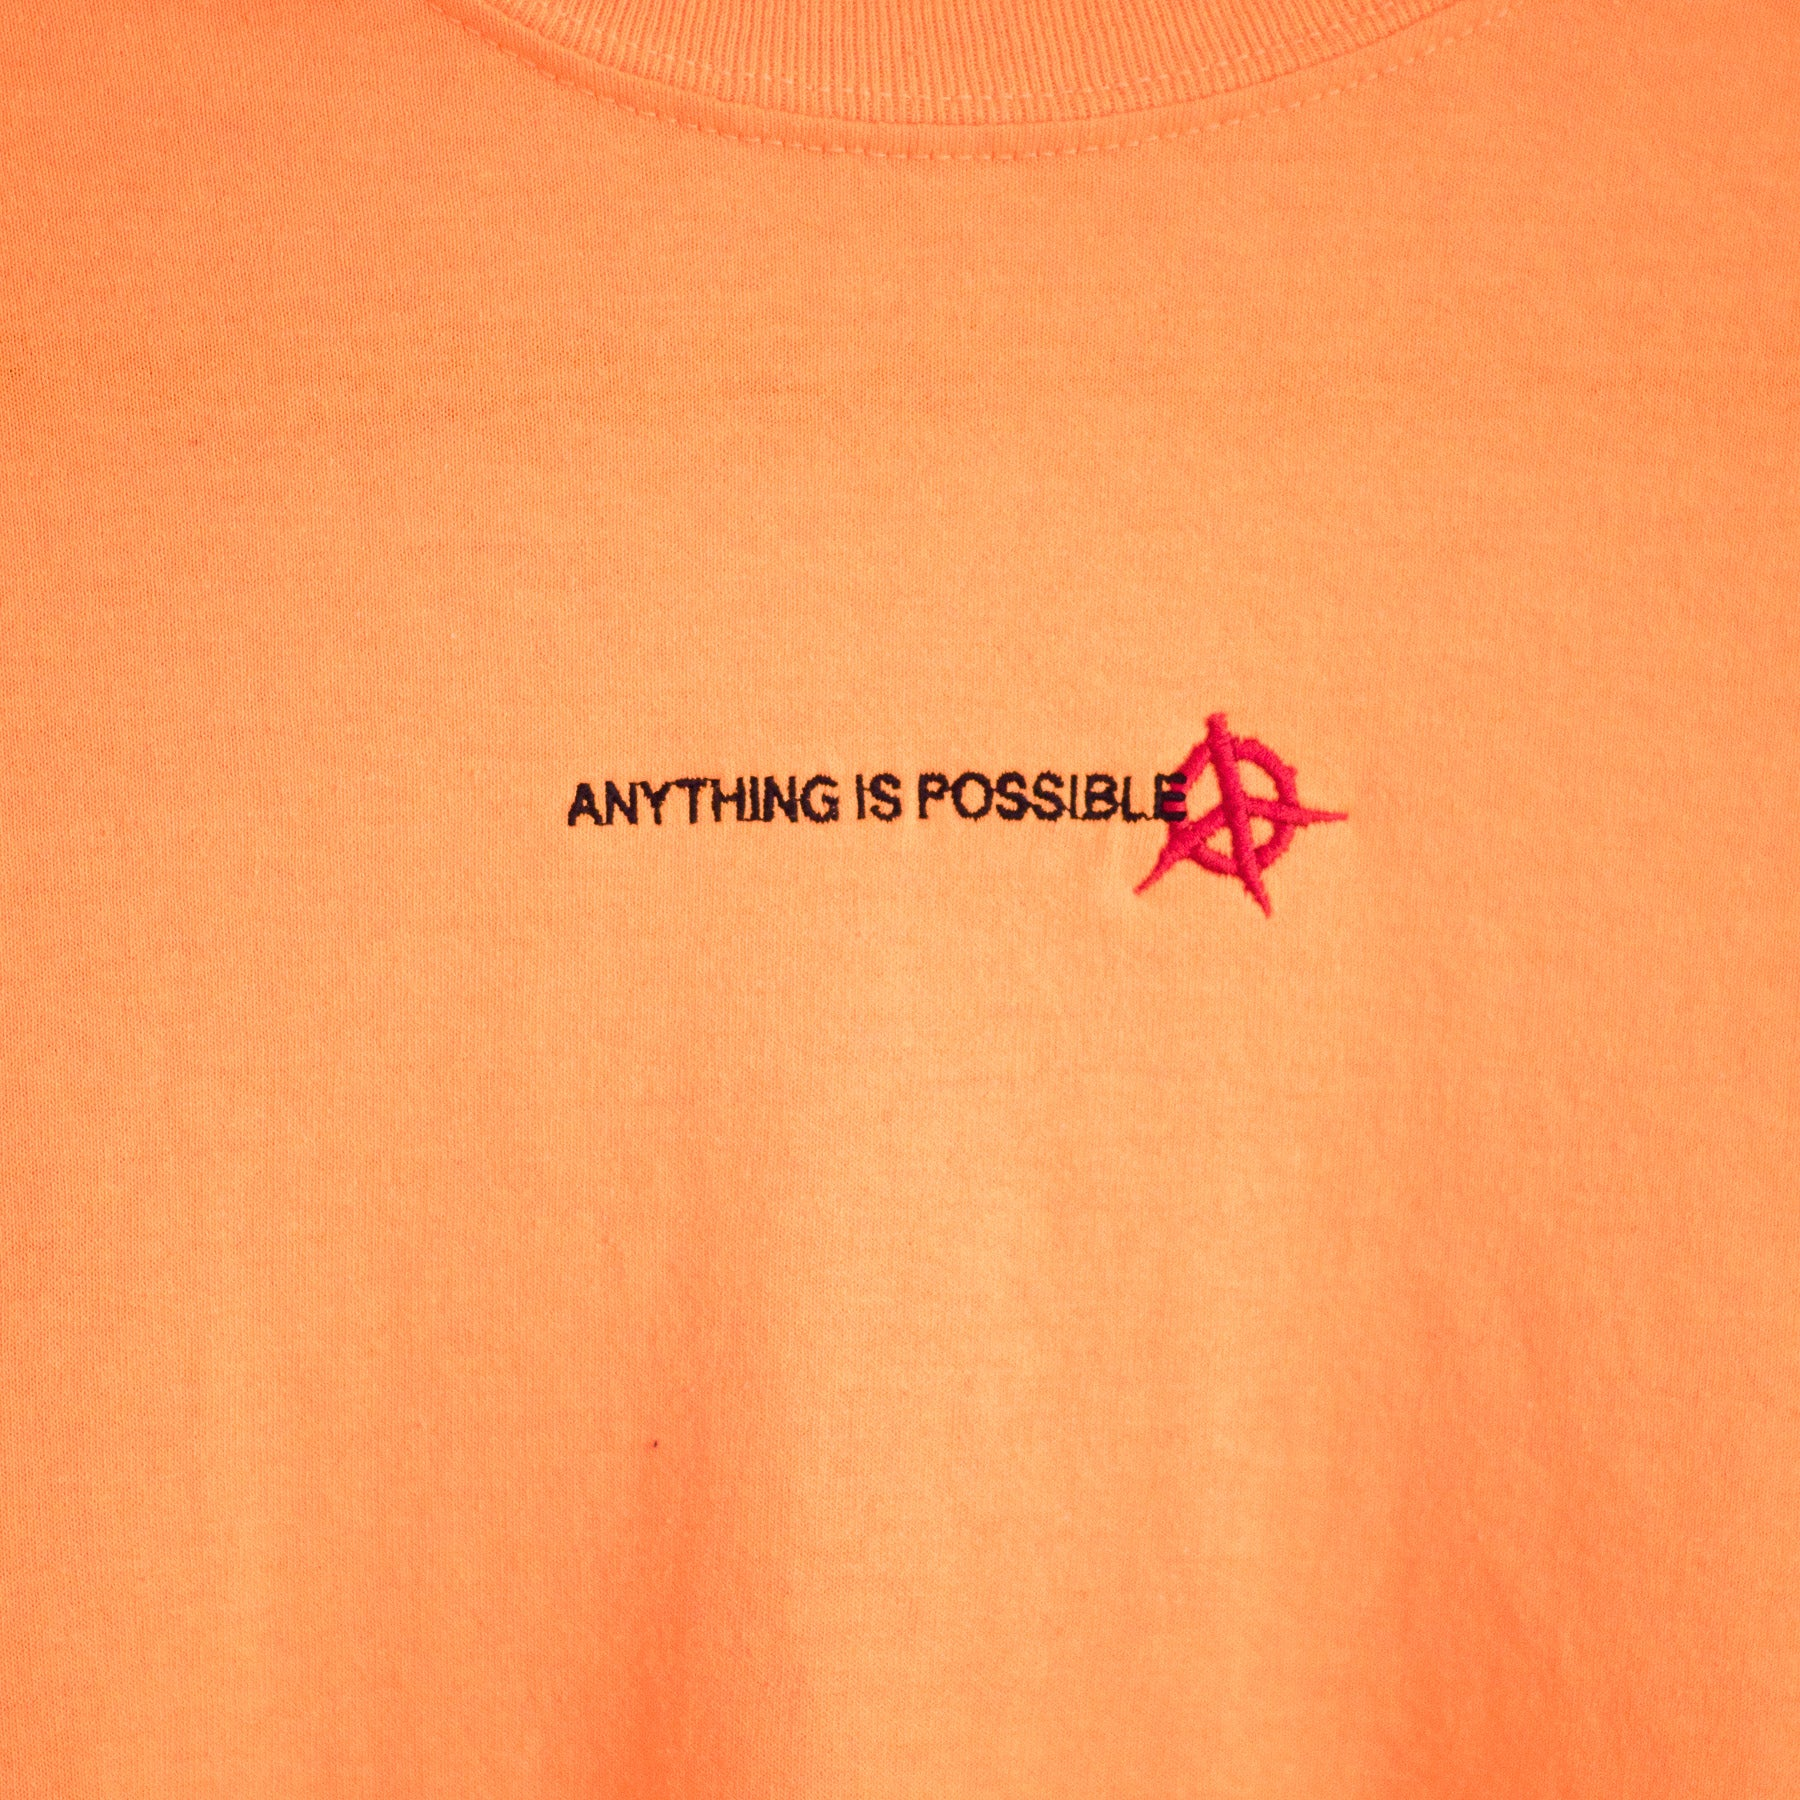 ANYTHING IS POSSIBLE YOUTH ESSENTIAL T-SHIRT - ORANGE